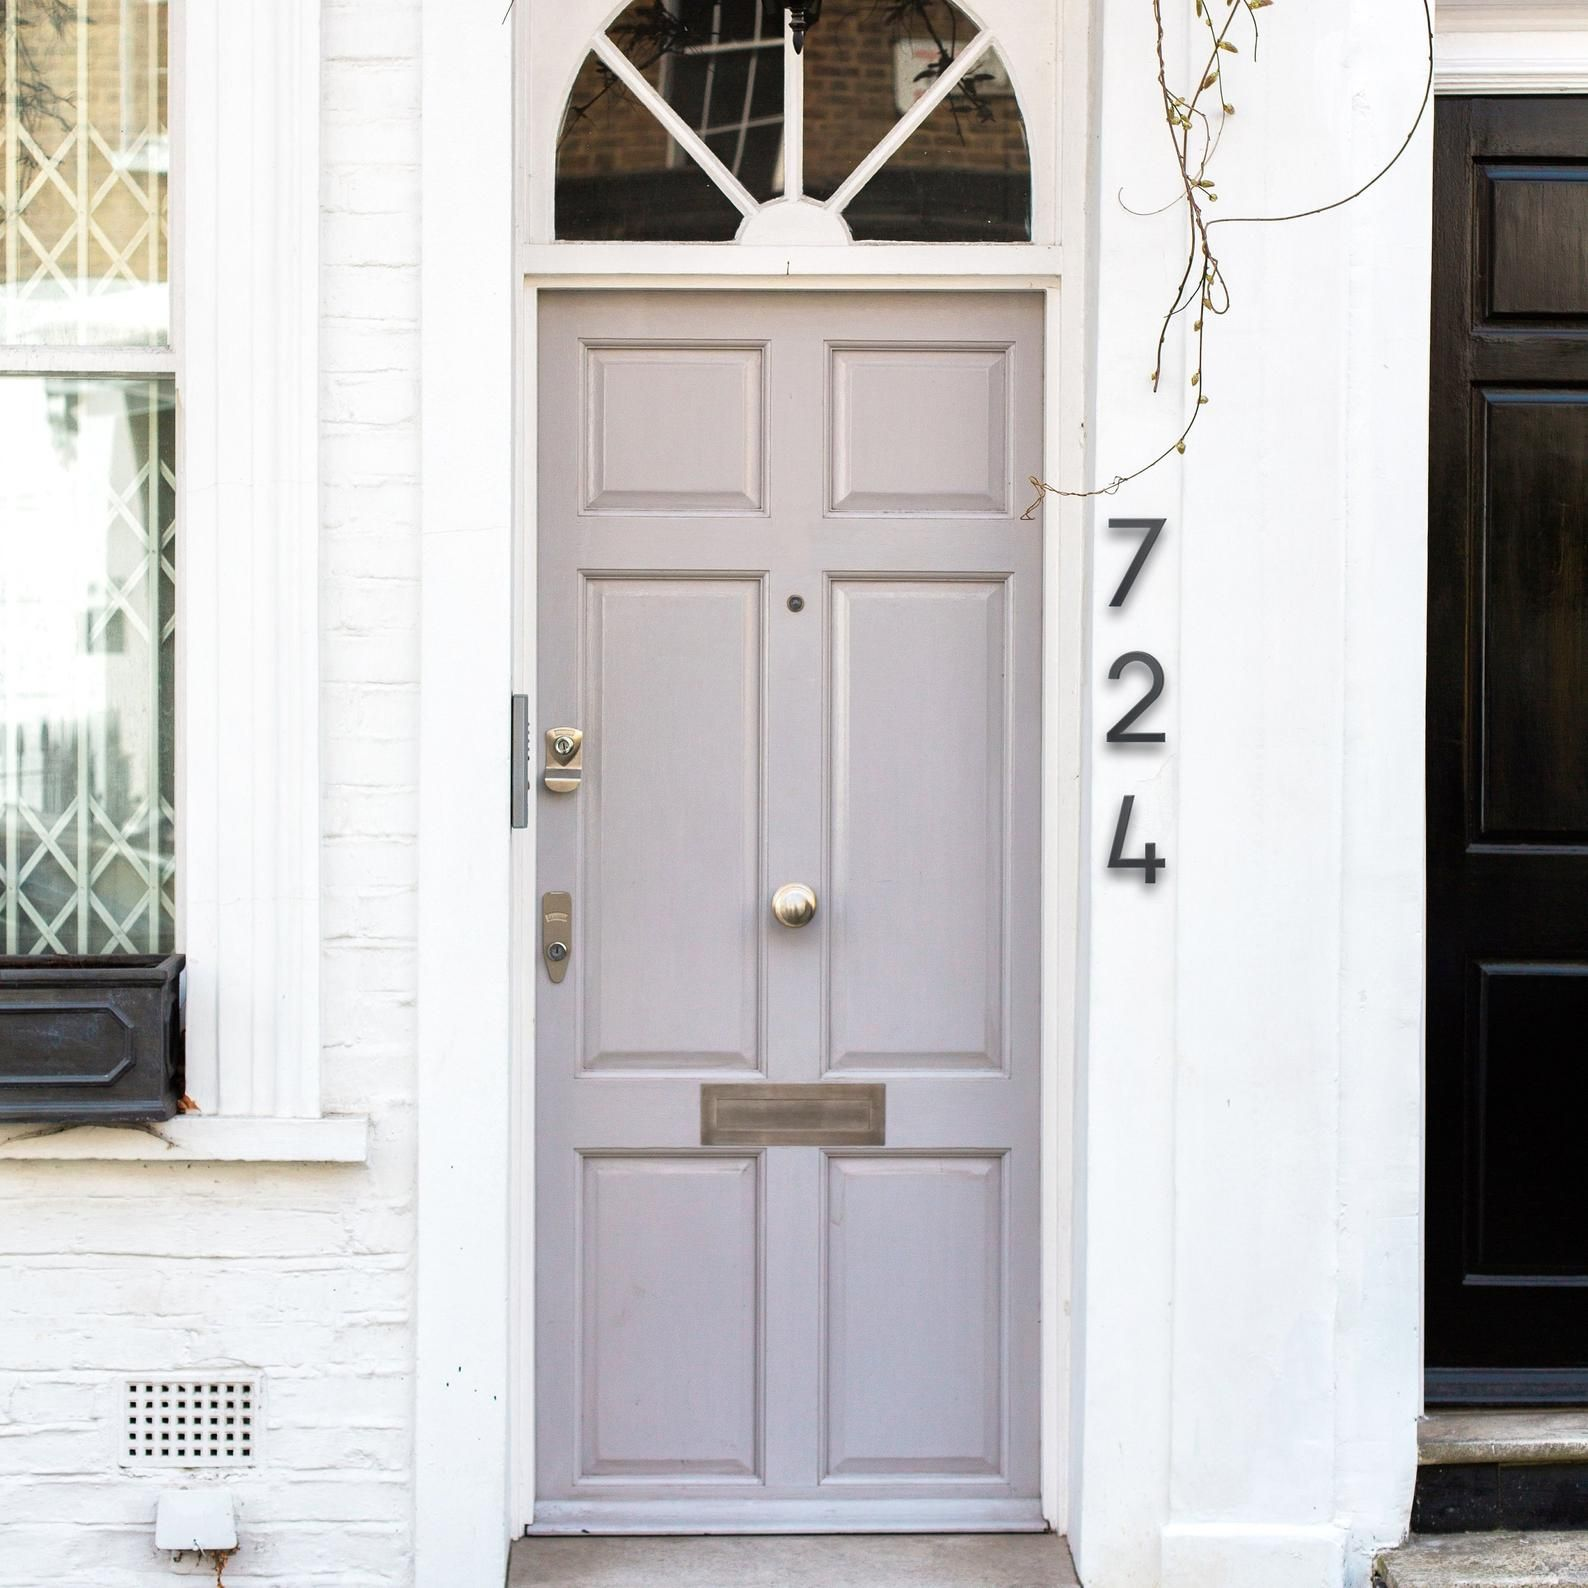 16 INCH Deco House Numbers (6 inch example shown) House